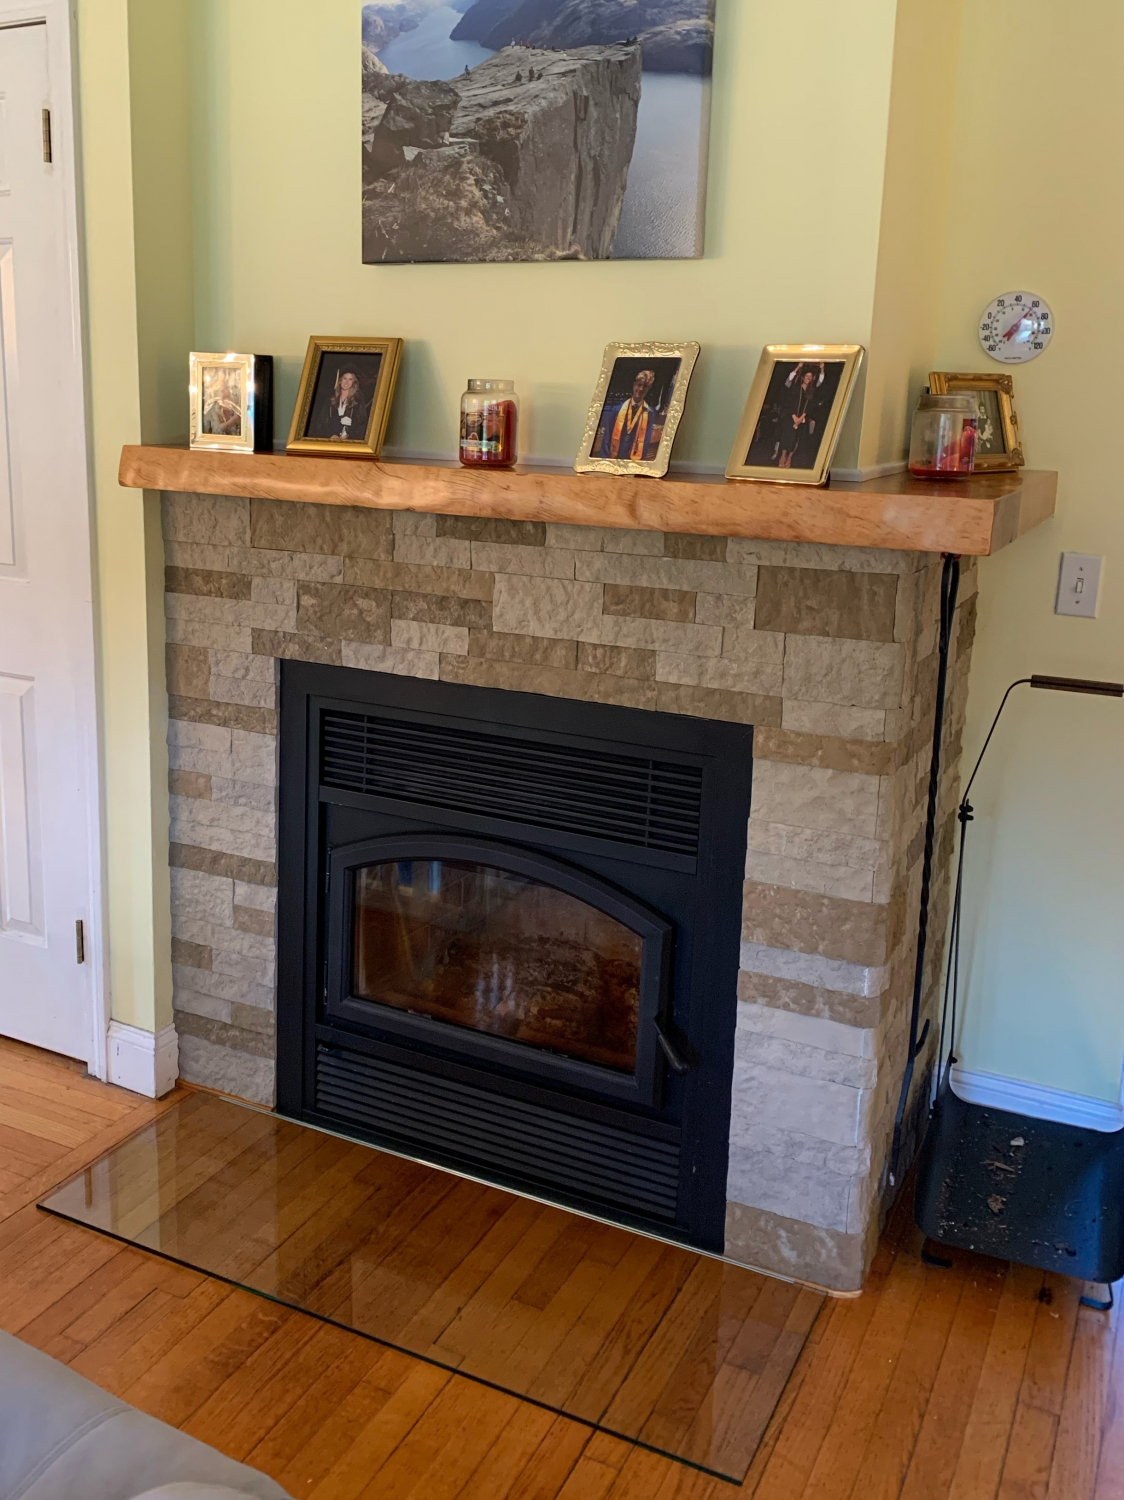 Fireplace Grate with Blower Inspirational Superior Fireplaces Inserts Chimney & Parts the 1 Dealer